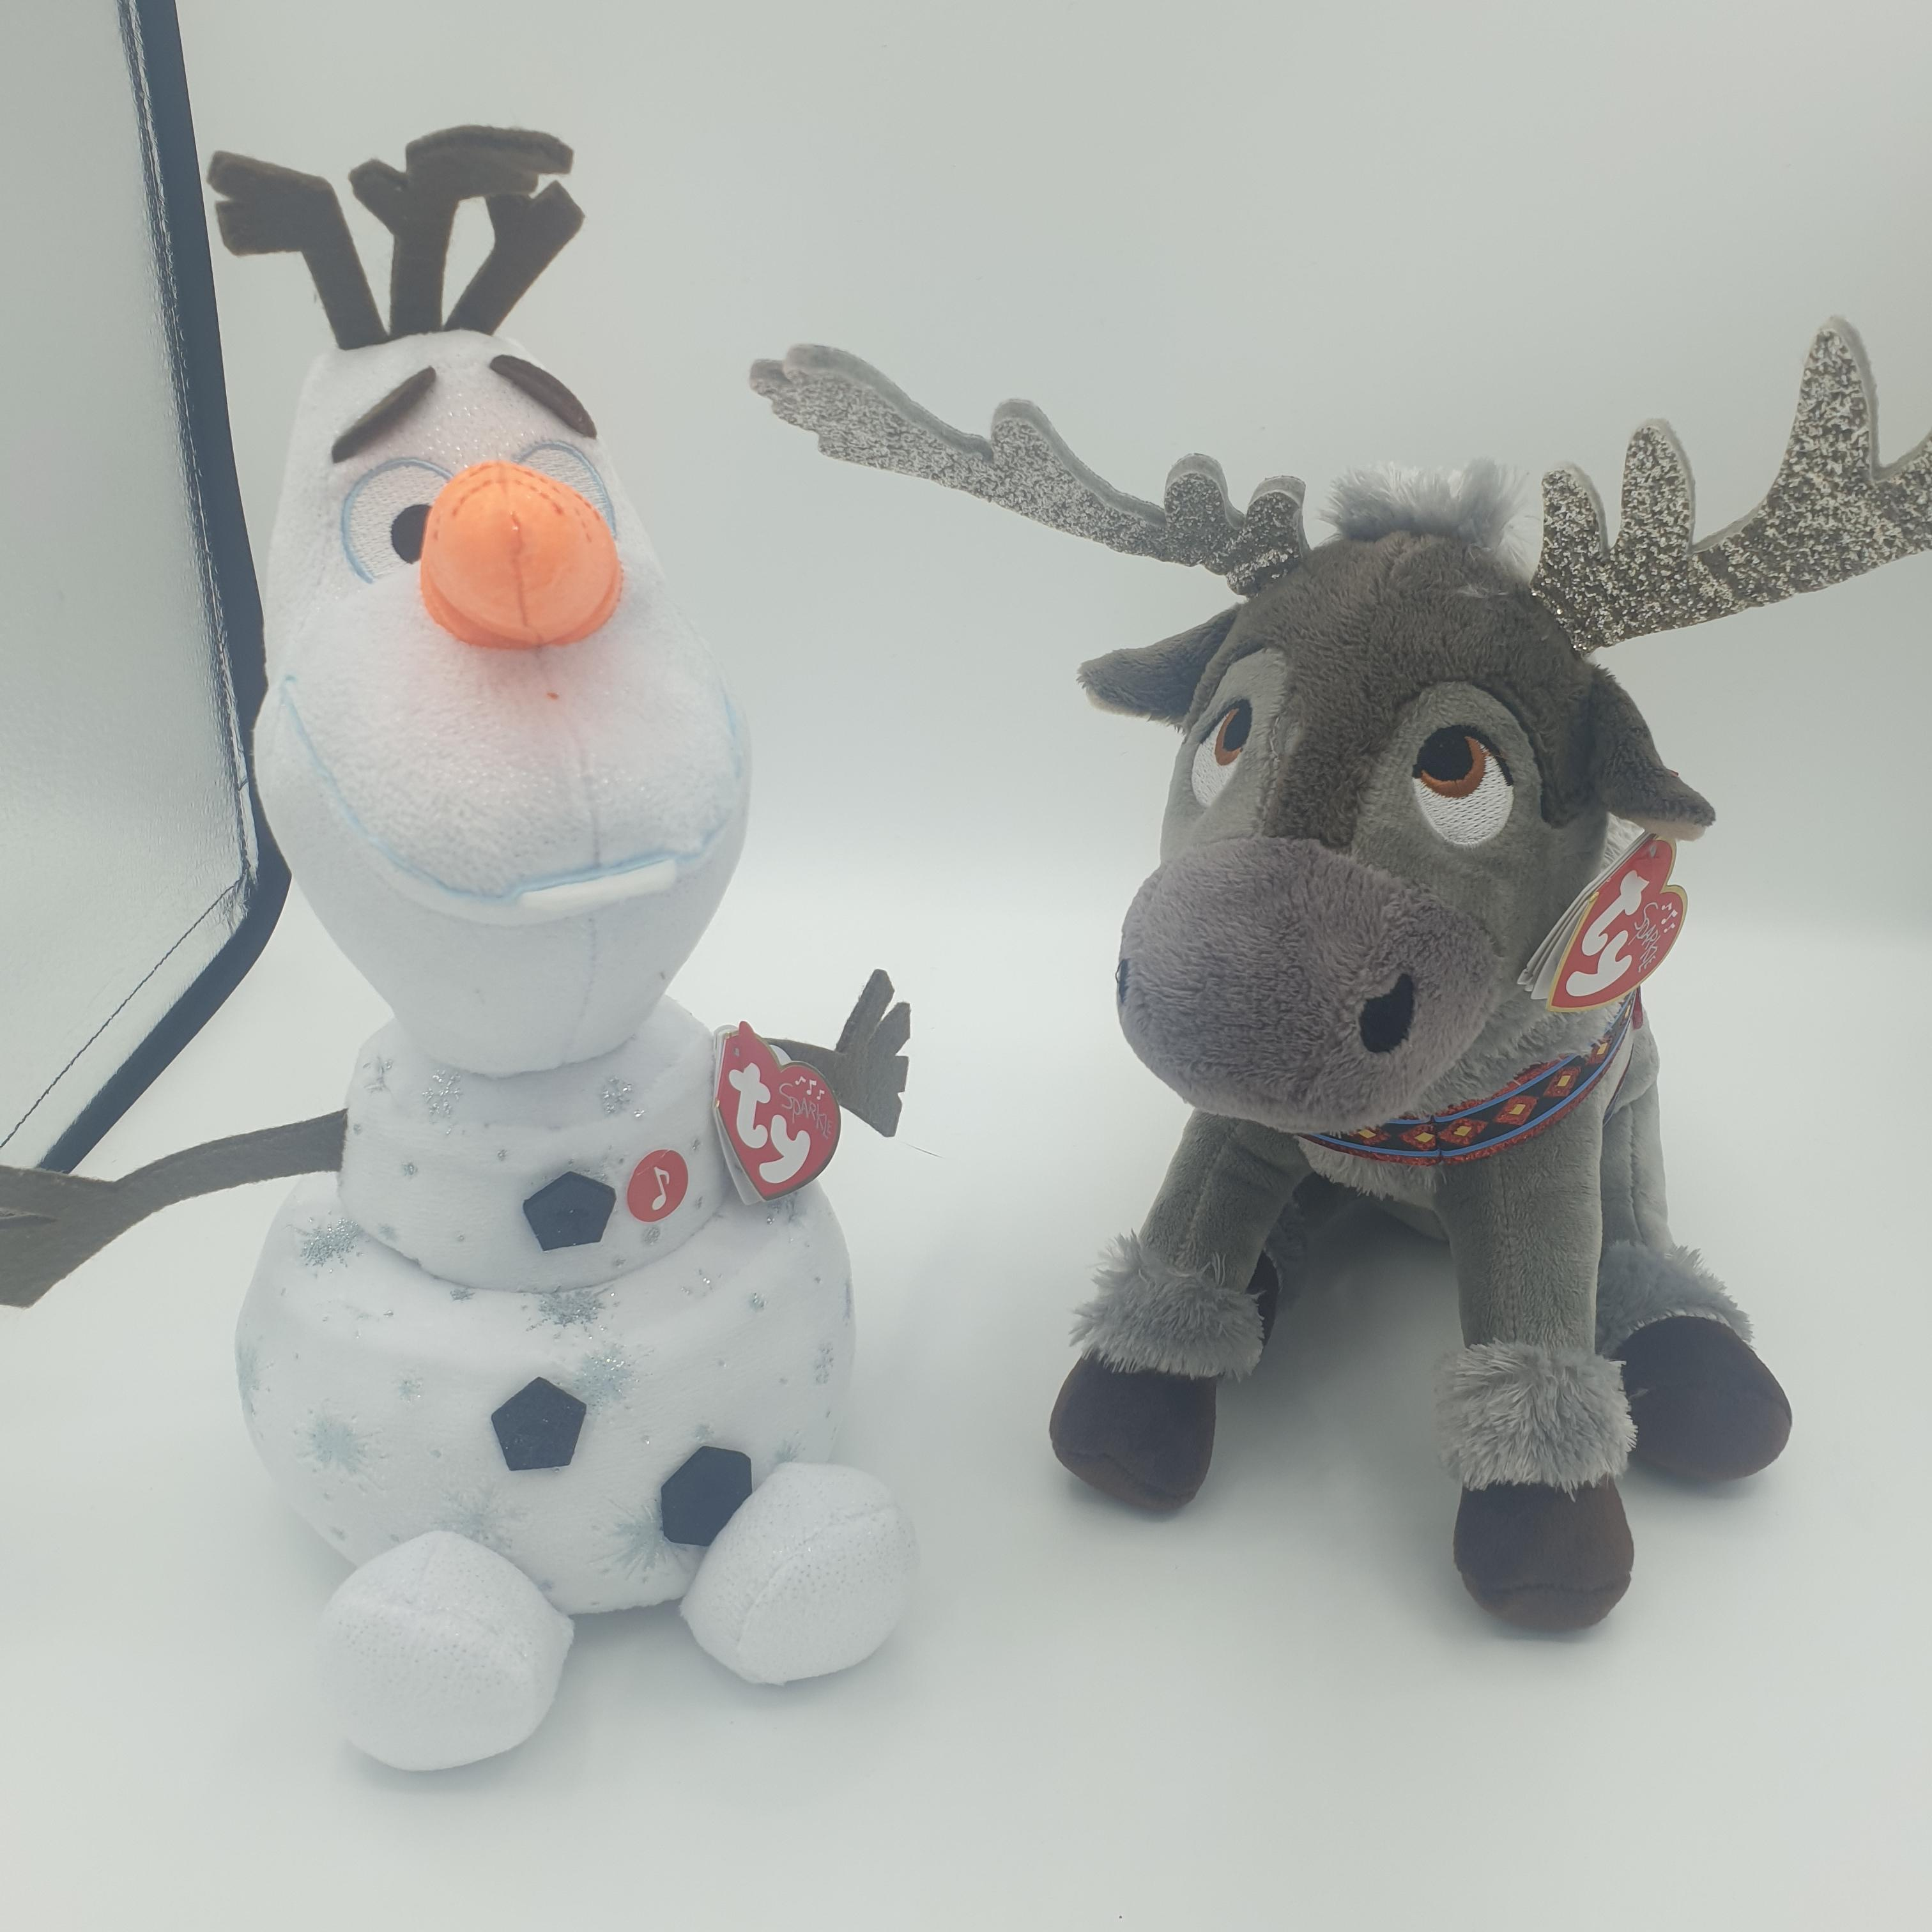 Frozen 2 Olaf and Sven Medium